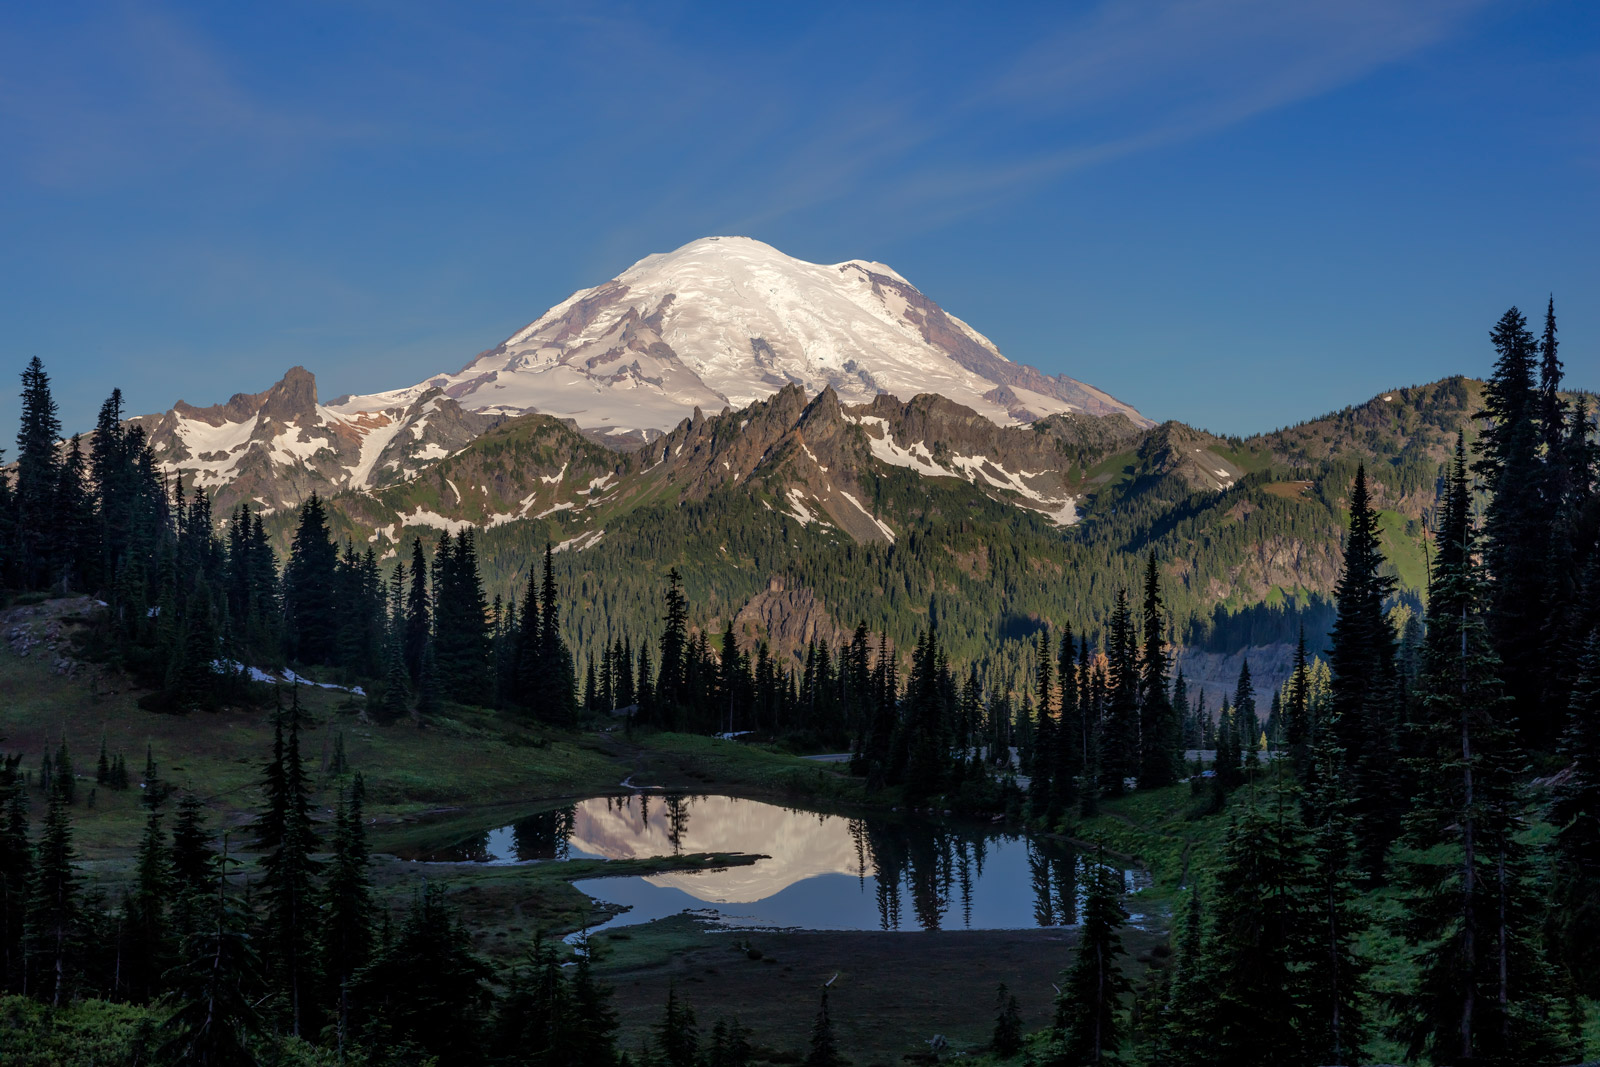 Washington, Mount Rainier, Tipsoo Lake, Reflection